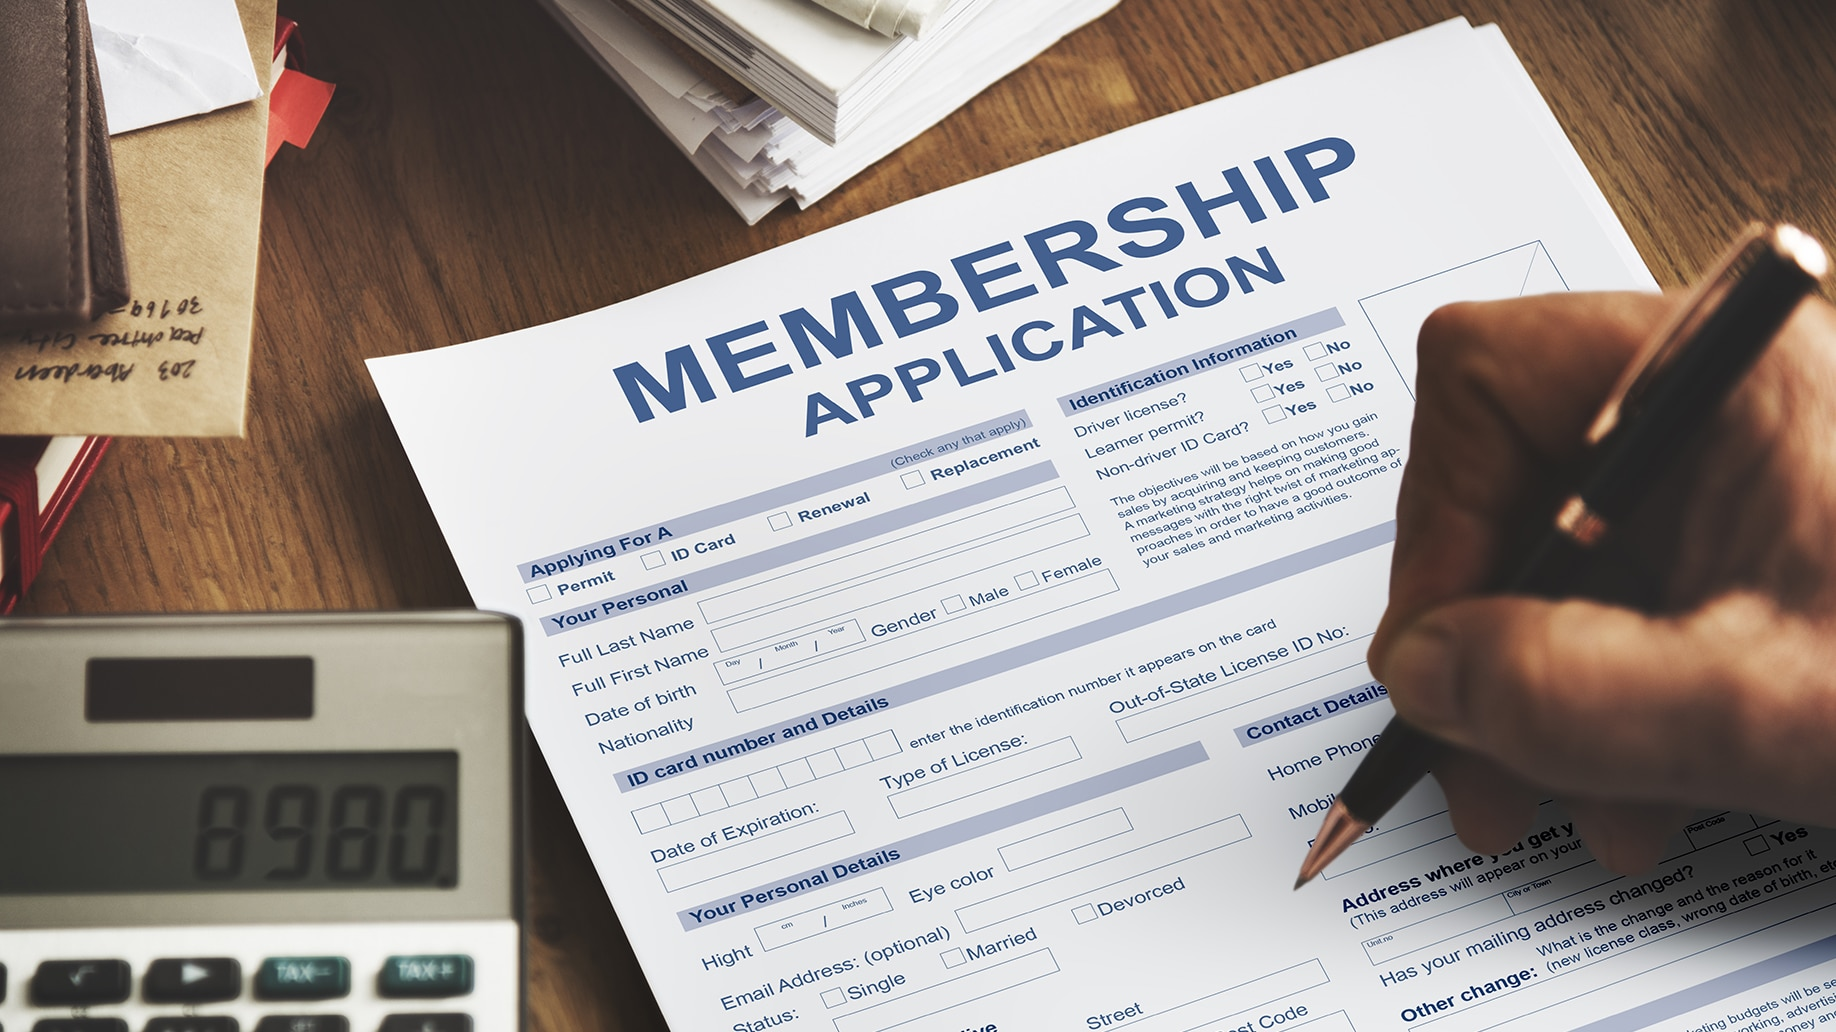 hand writing in membership application form